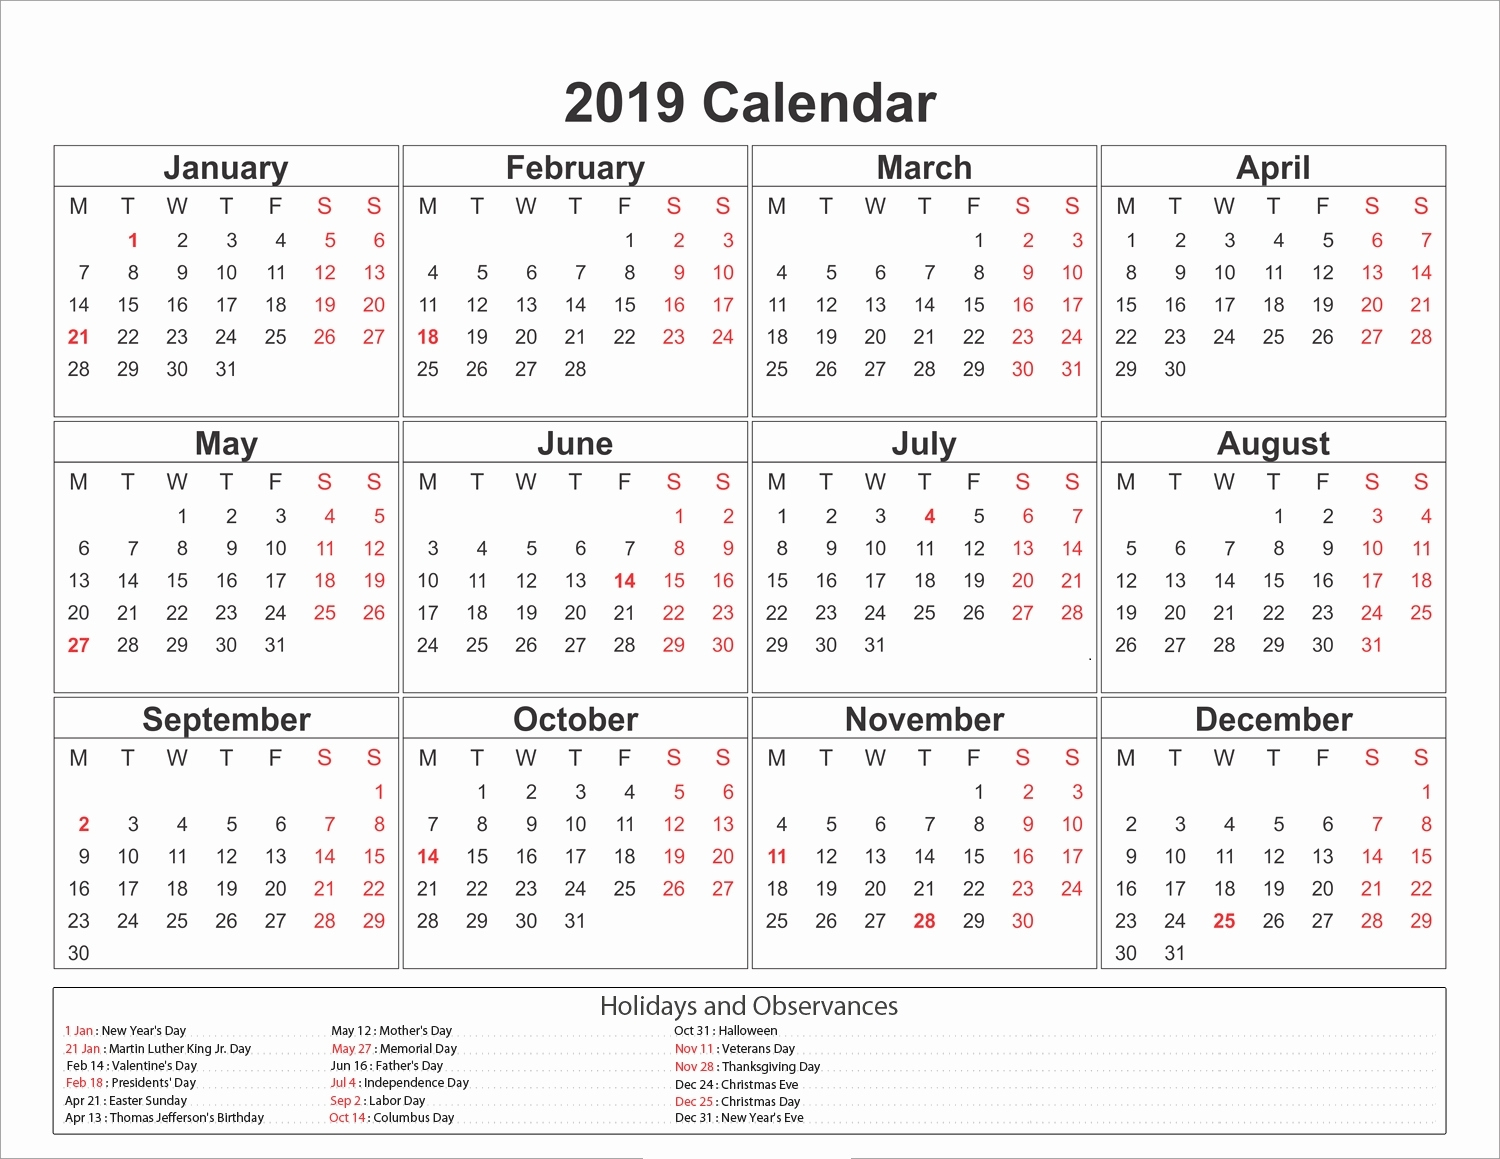 Get 2019 Blank Calendar Print-Outs Fill In With Holidays